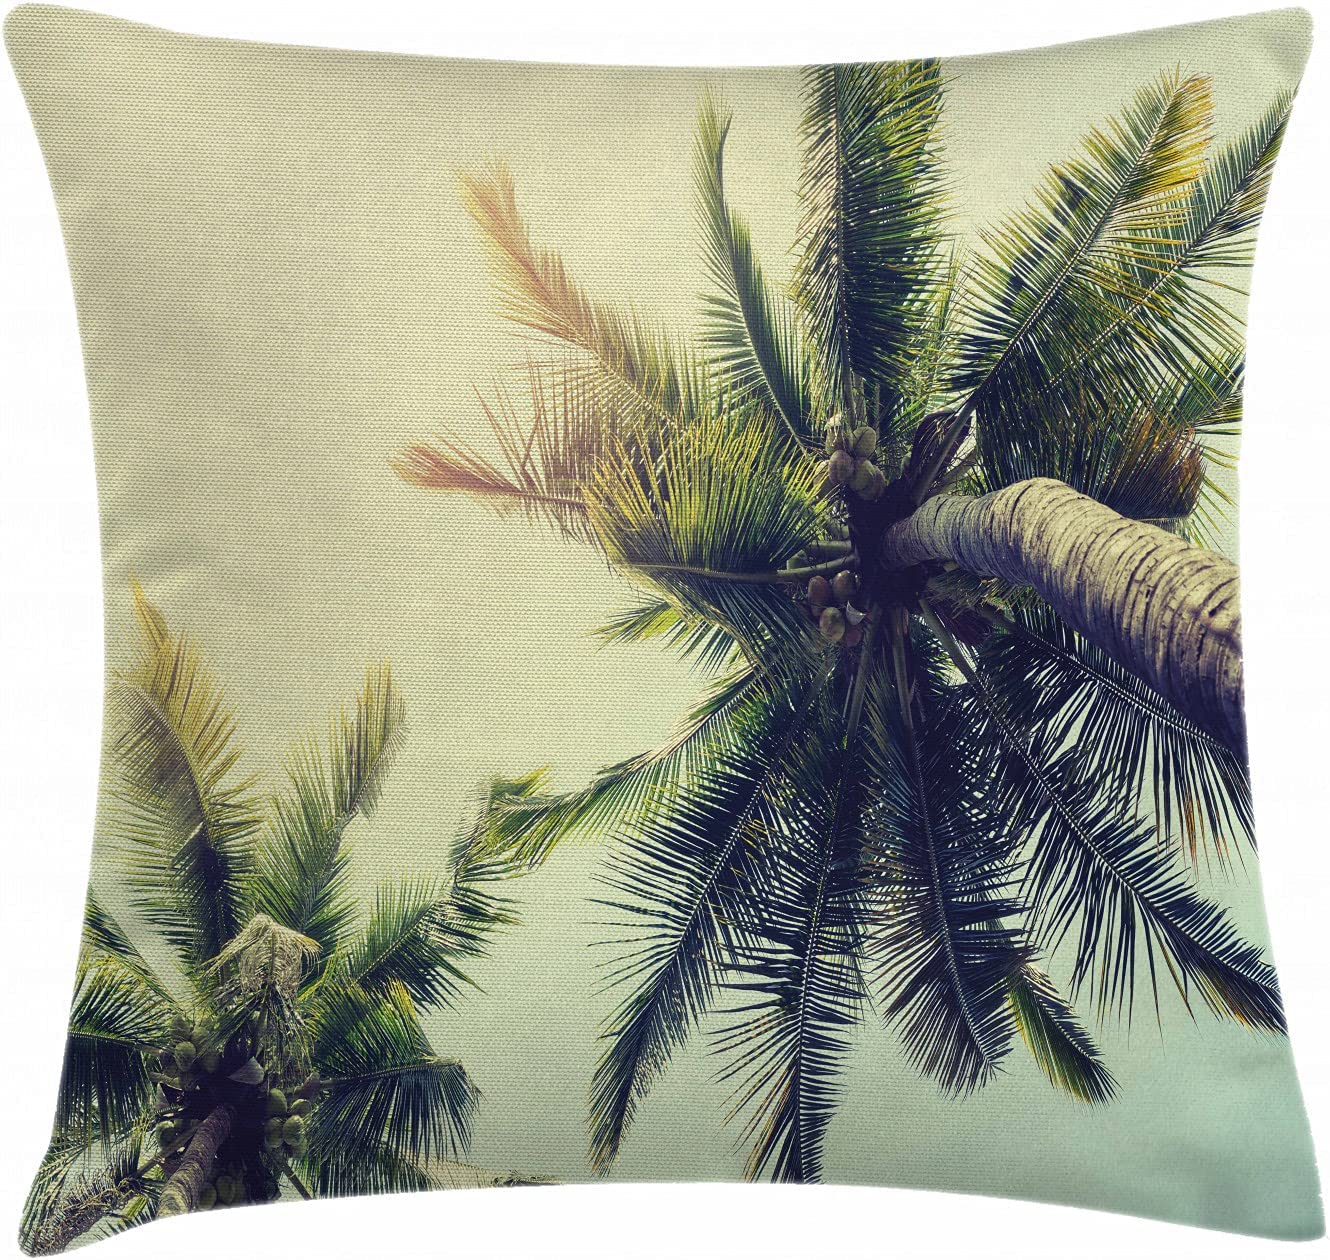 Ambesonne Palm Tree Throw Pillow Cushion Cover, Coconut Trees on Tropical  Beach Caribbean Coastline Ocean Summer, Decorative Square Accent Pillow ...